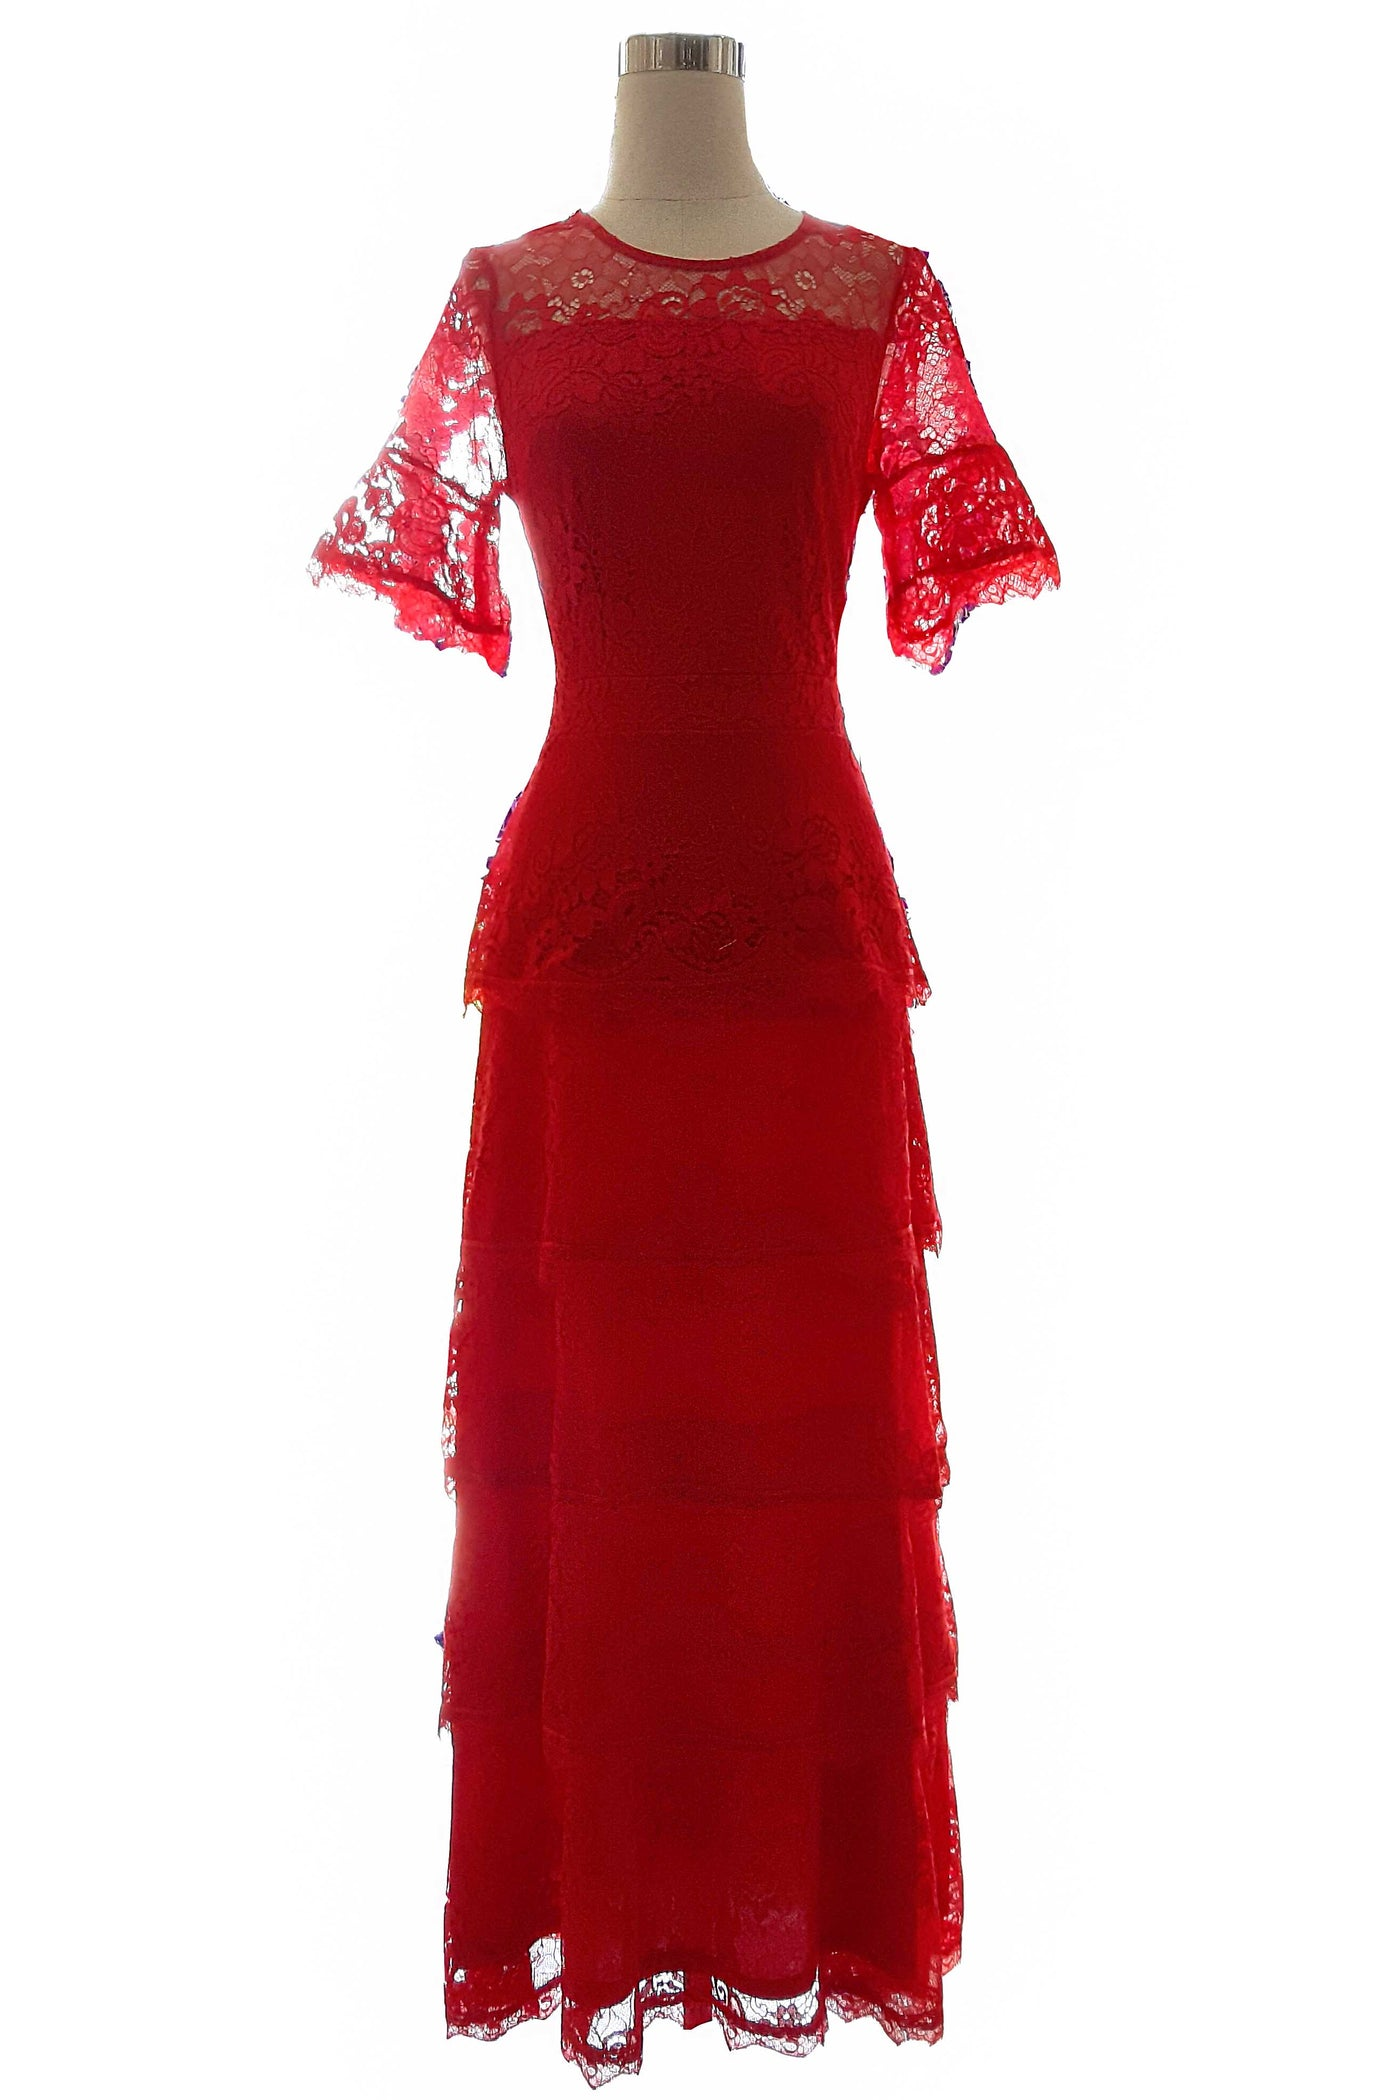 Buy : Private Label - Red Layered Lace Dress